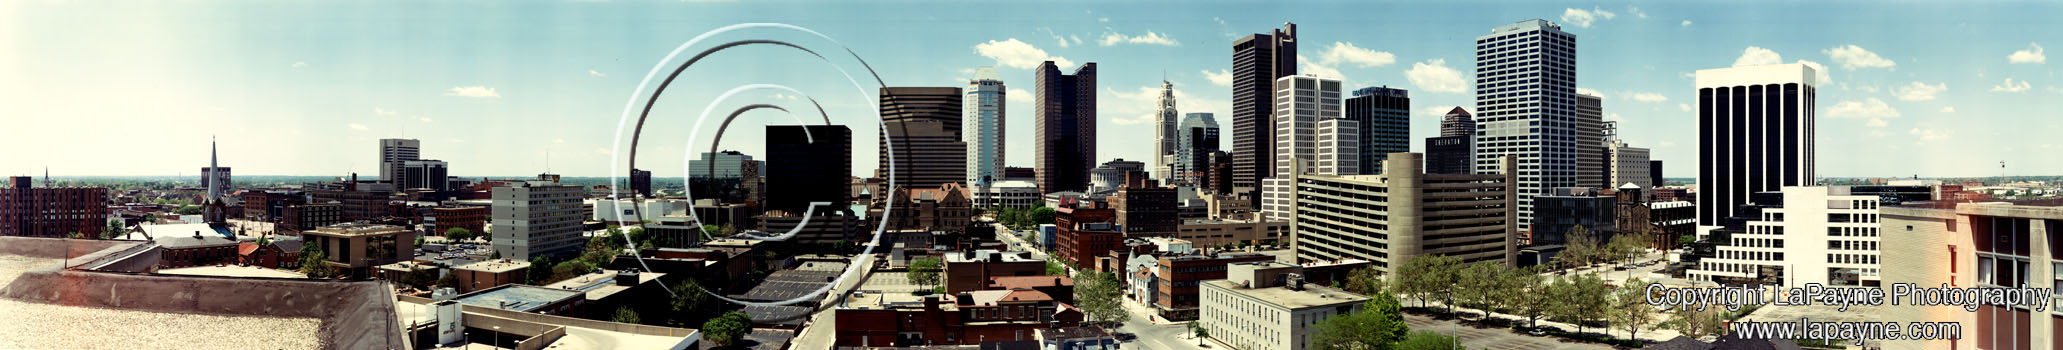 Columbus Ohio Skyline 1994